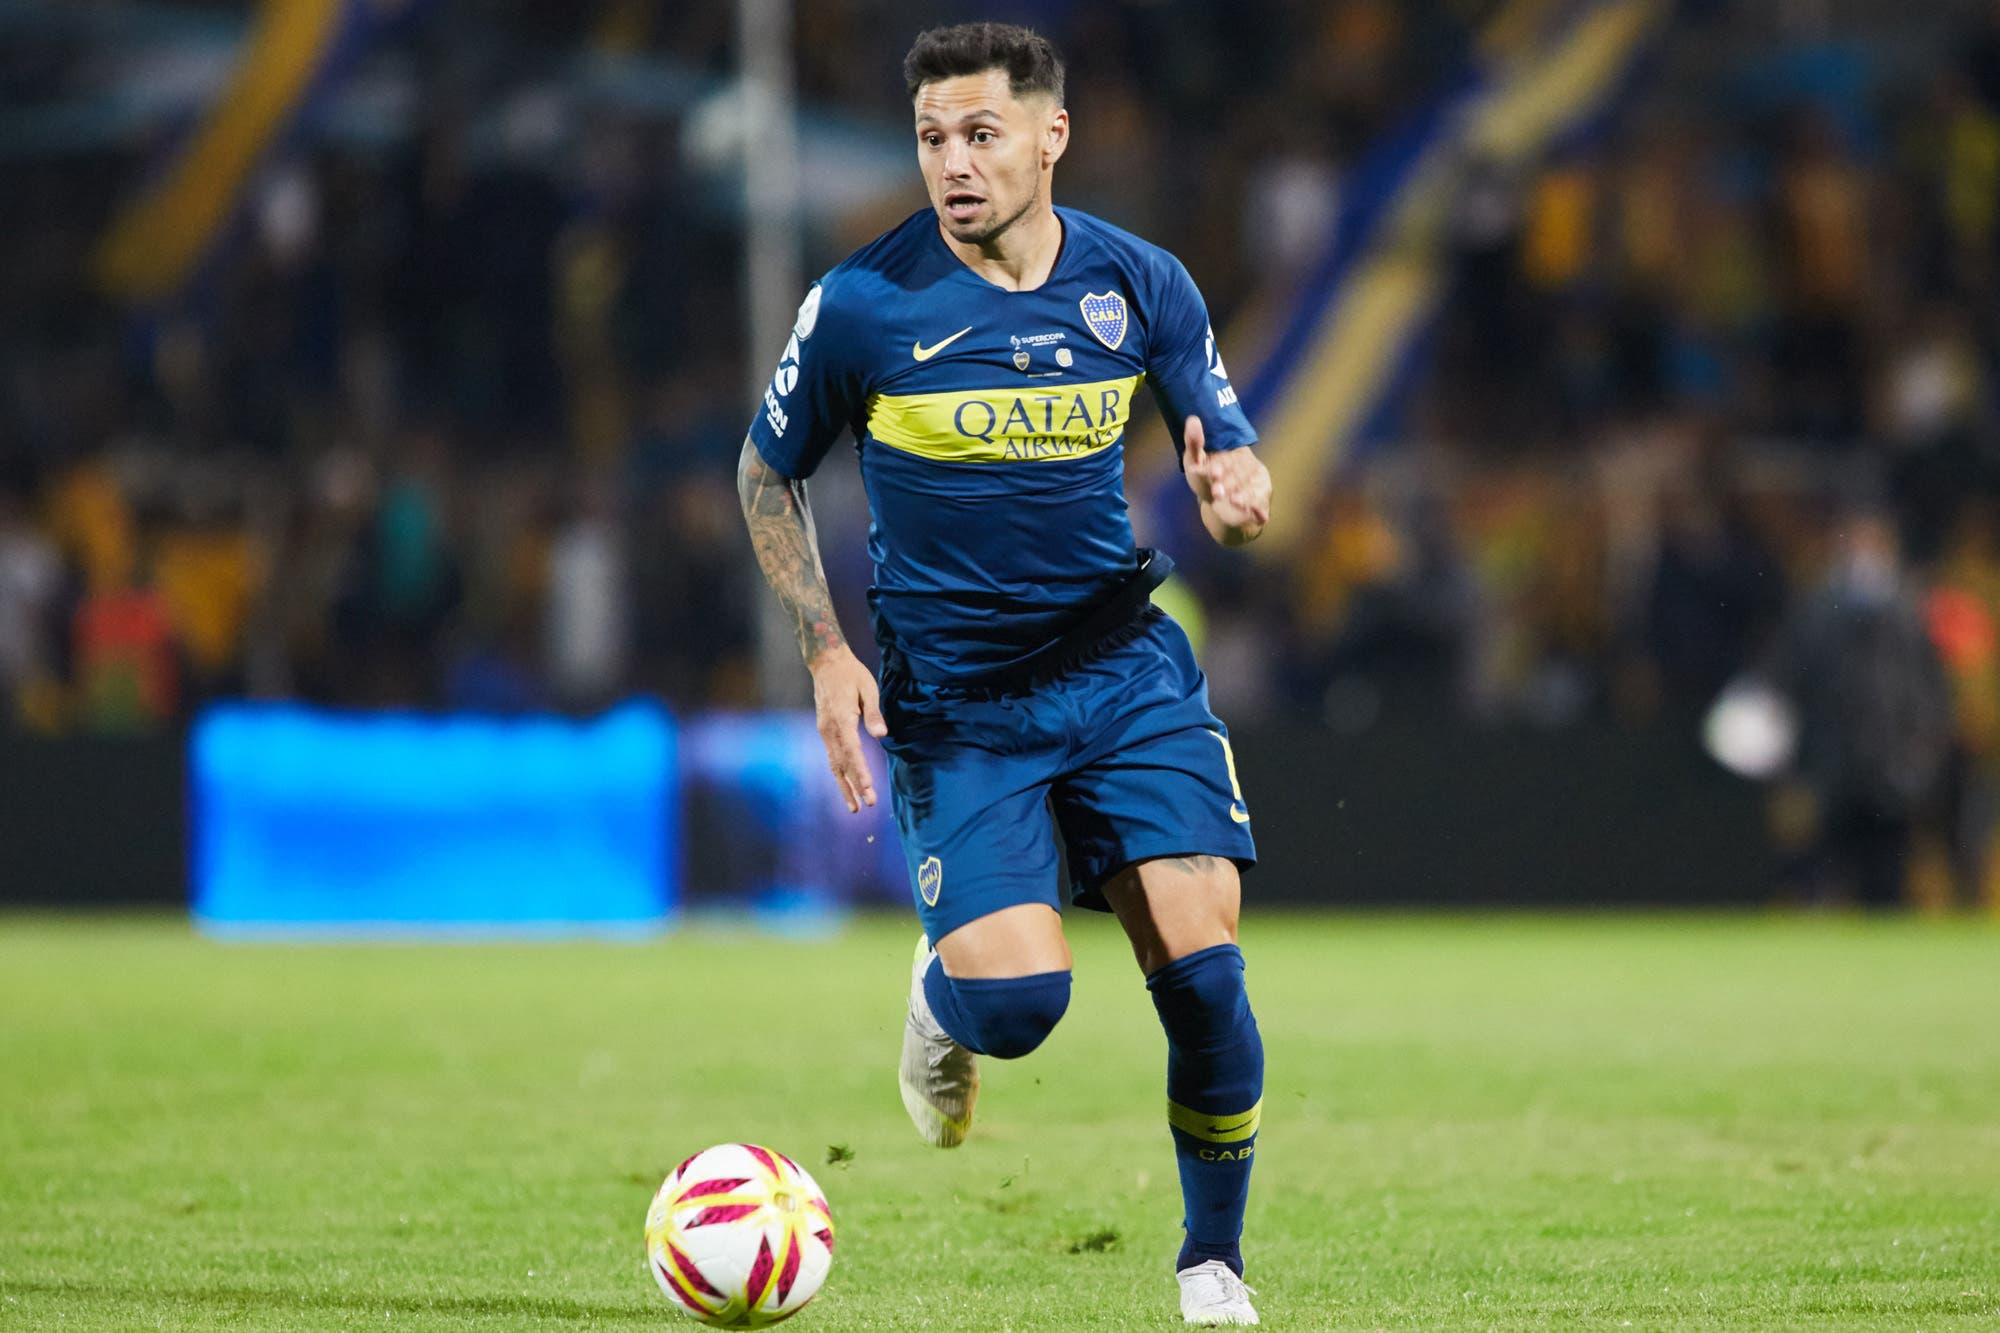 Boca-Newell´s, Superliga: horario, TV y formaciones